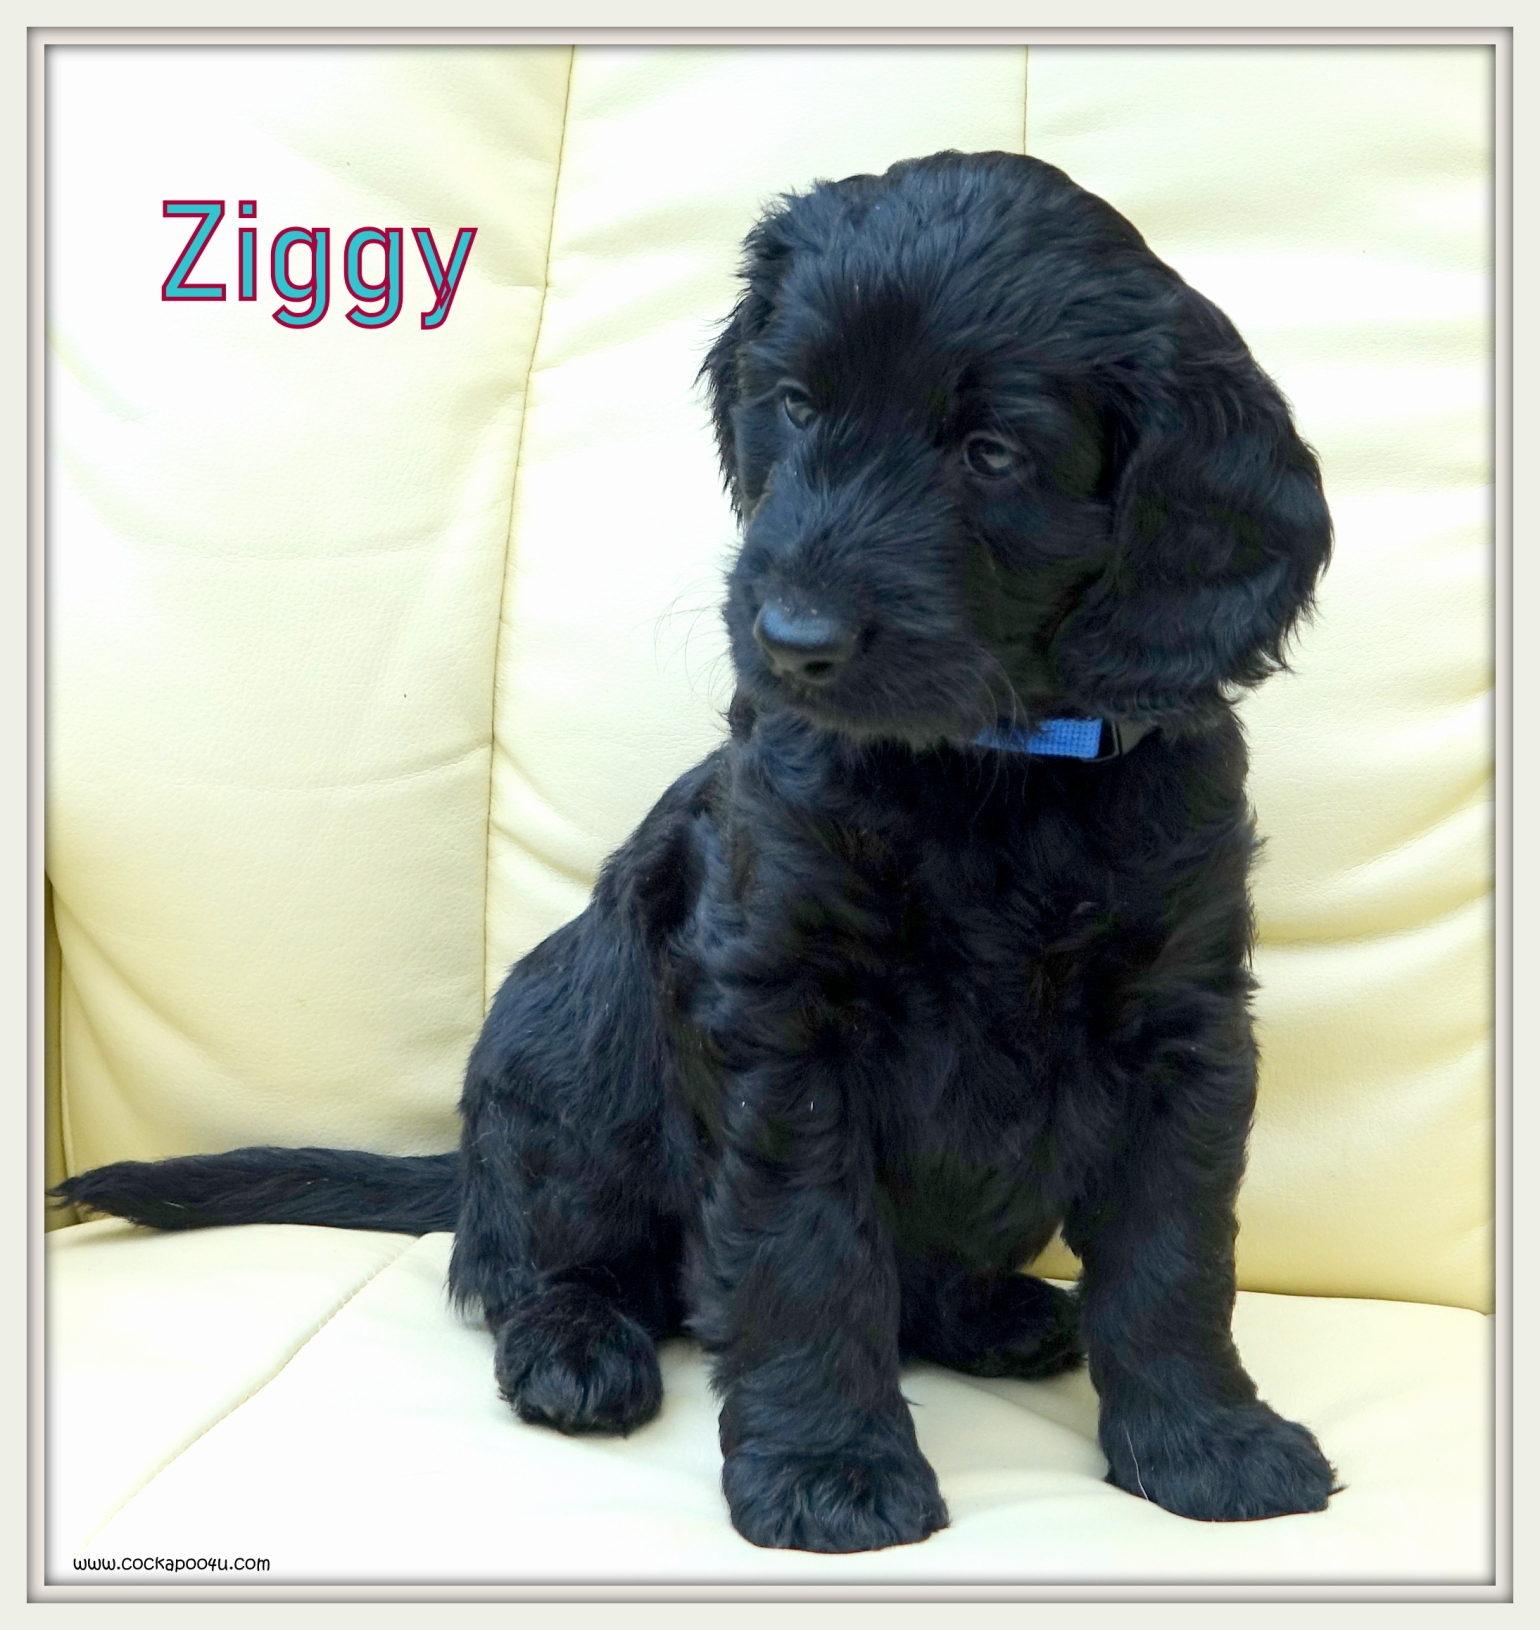 5. Ziggy aaaa Named.JPG